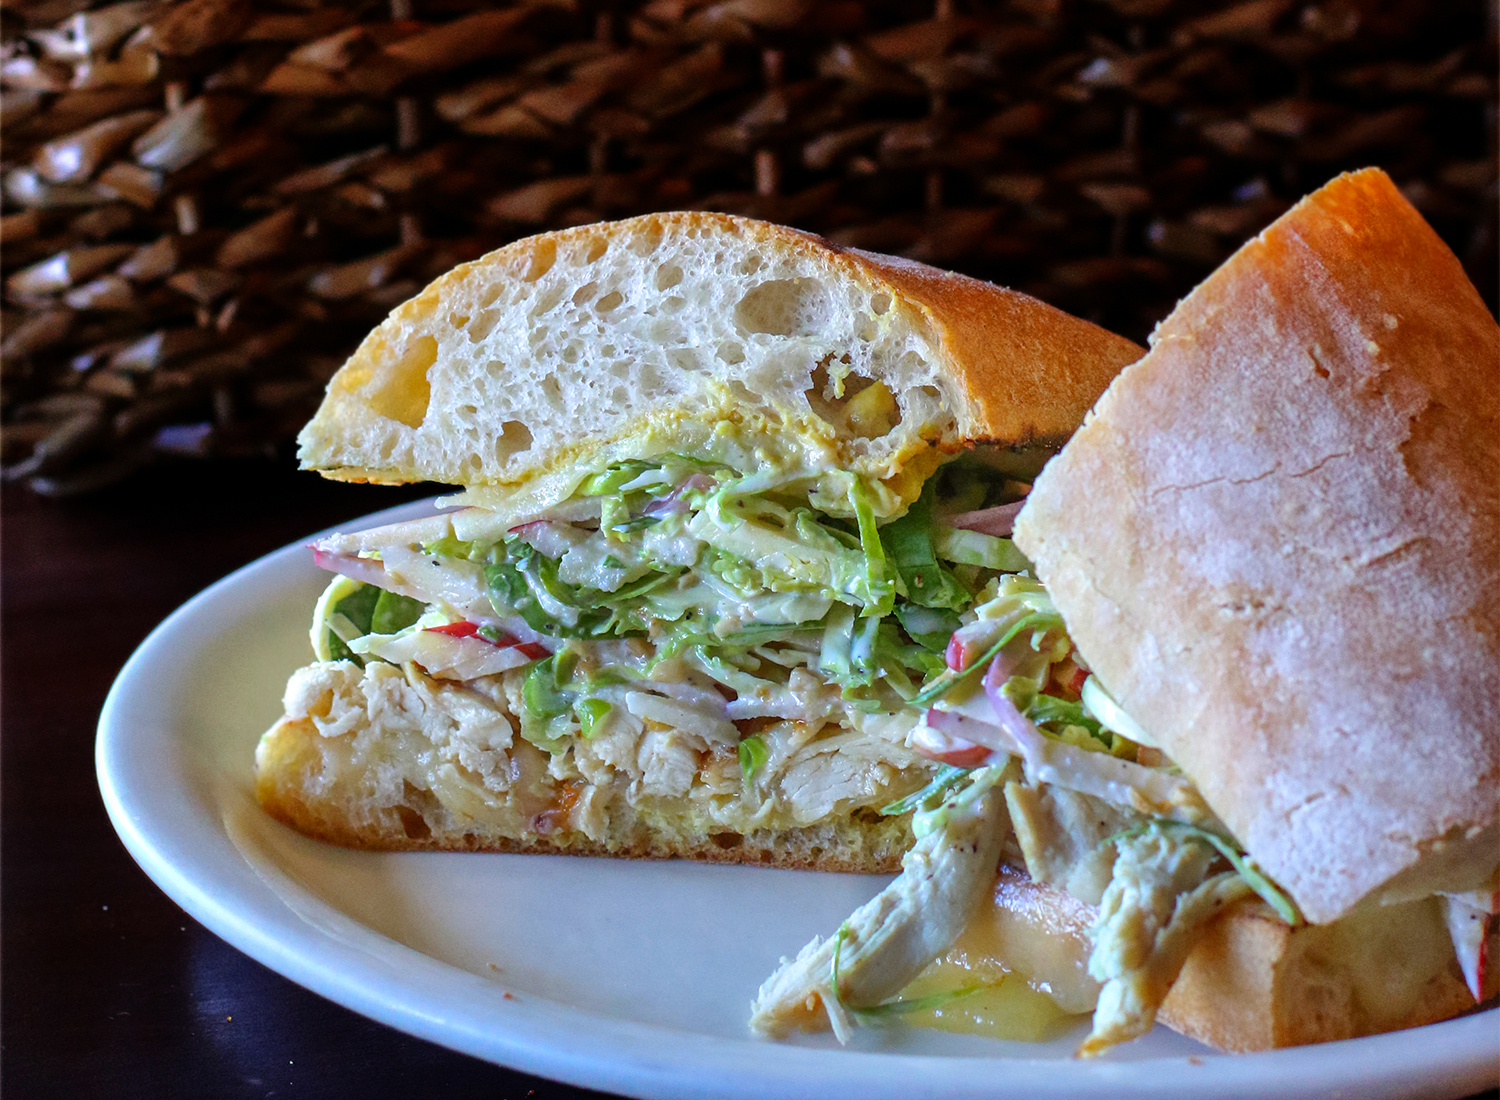 Roast chicken sandwich with apple Brussels sprout slaw, sharp cheddar, Dijon. Heather Irwin/PD